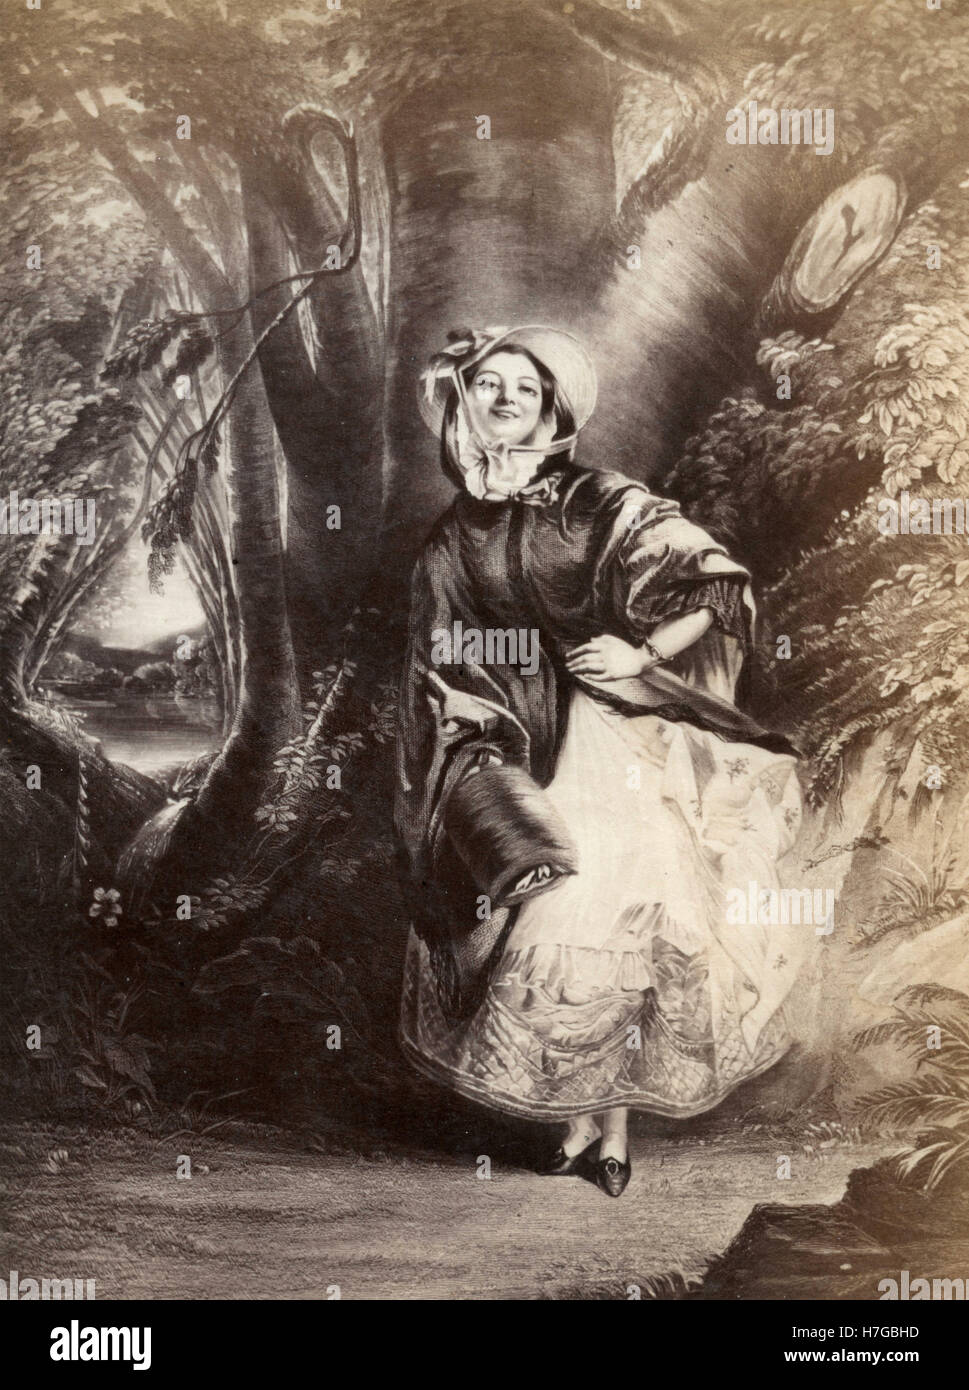 Girl in the wood, etching - Stock Image